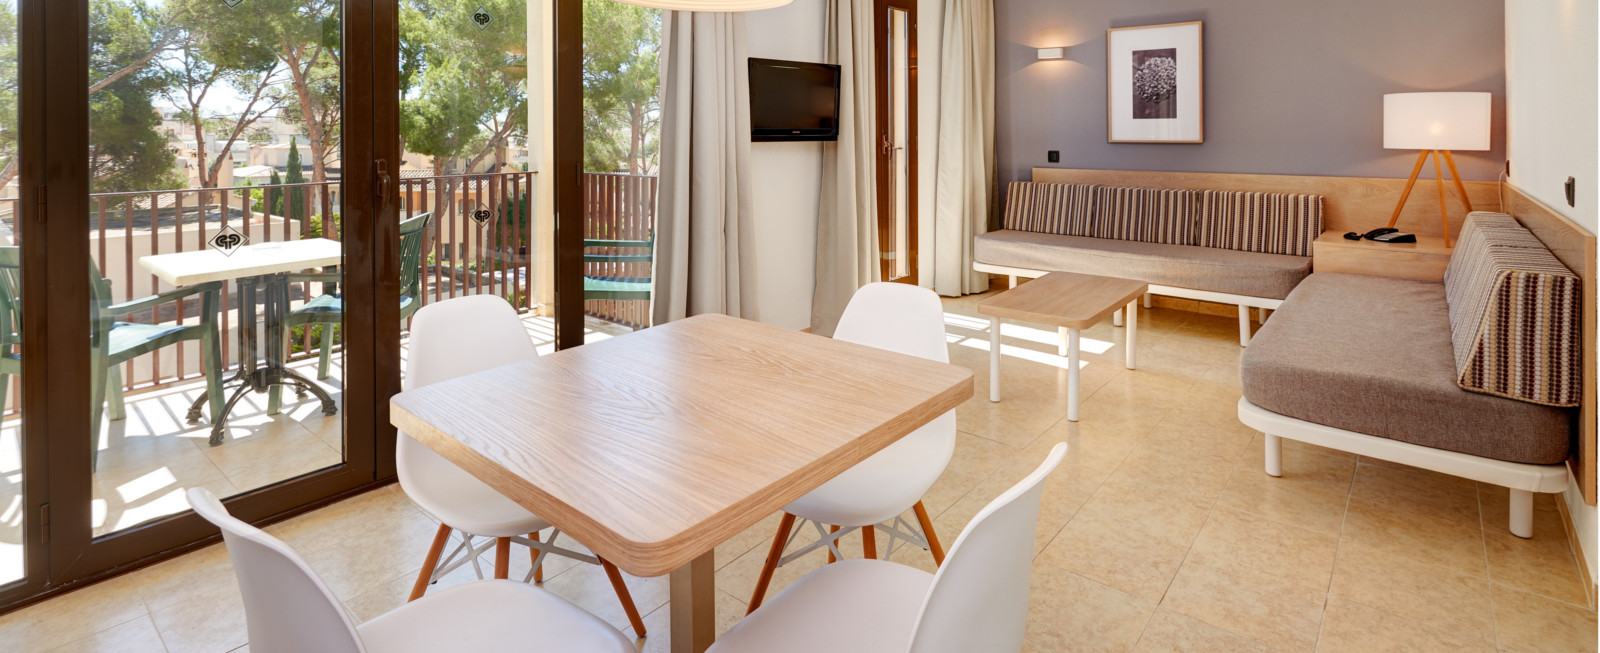 Rooms protur floriana resort aparthotel cala bona for Appart hotel jacuzzi